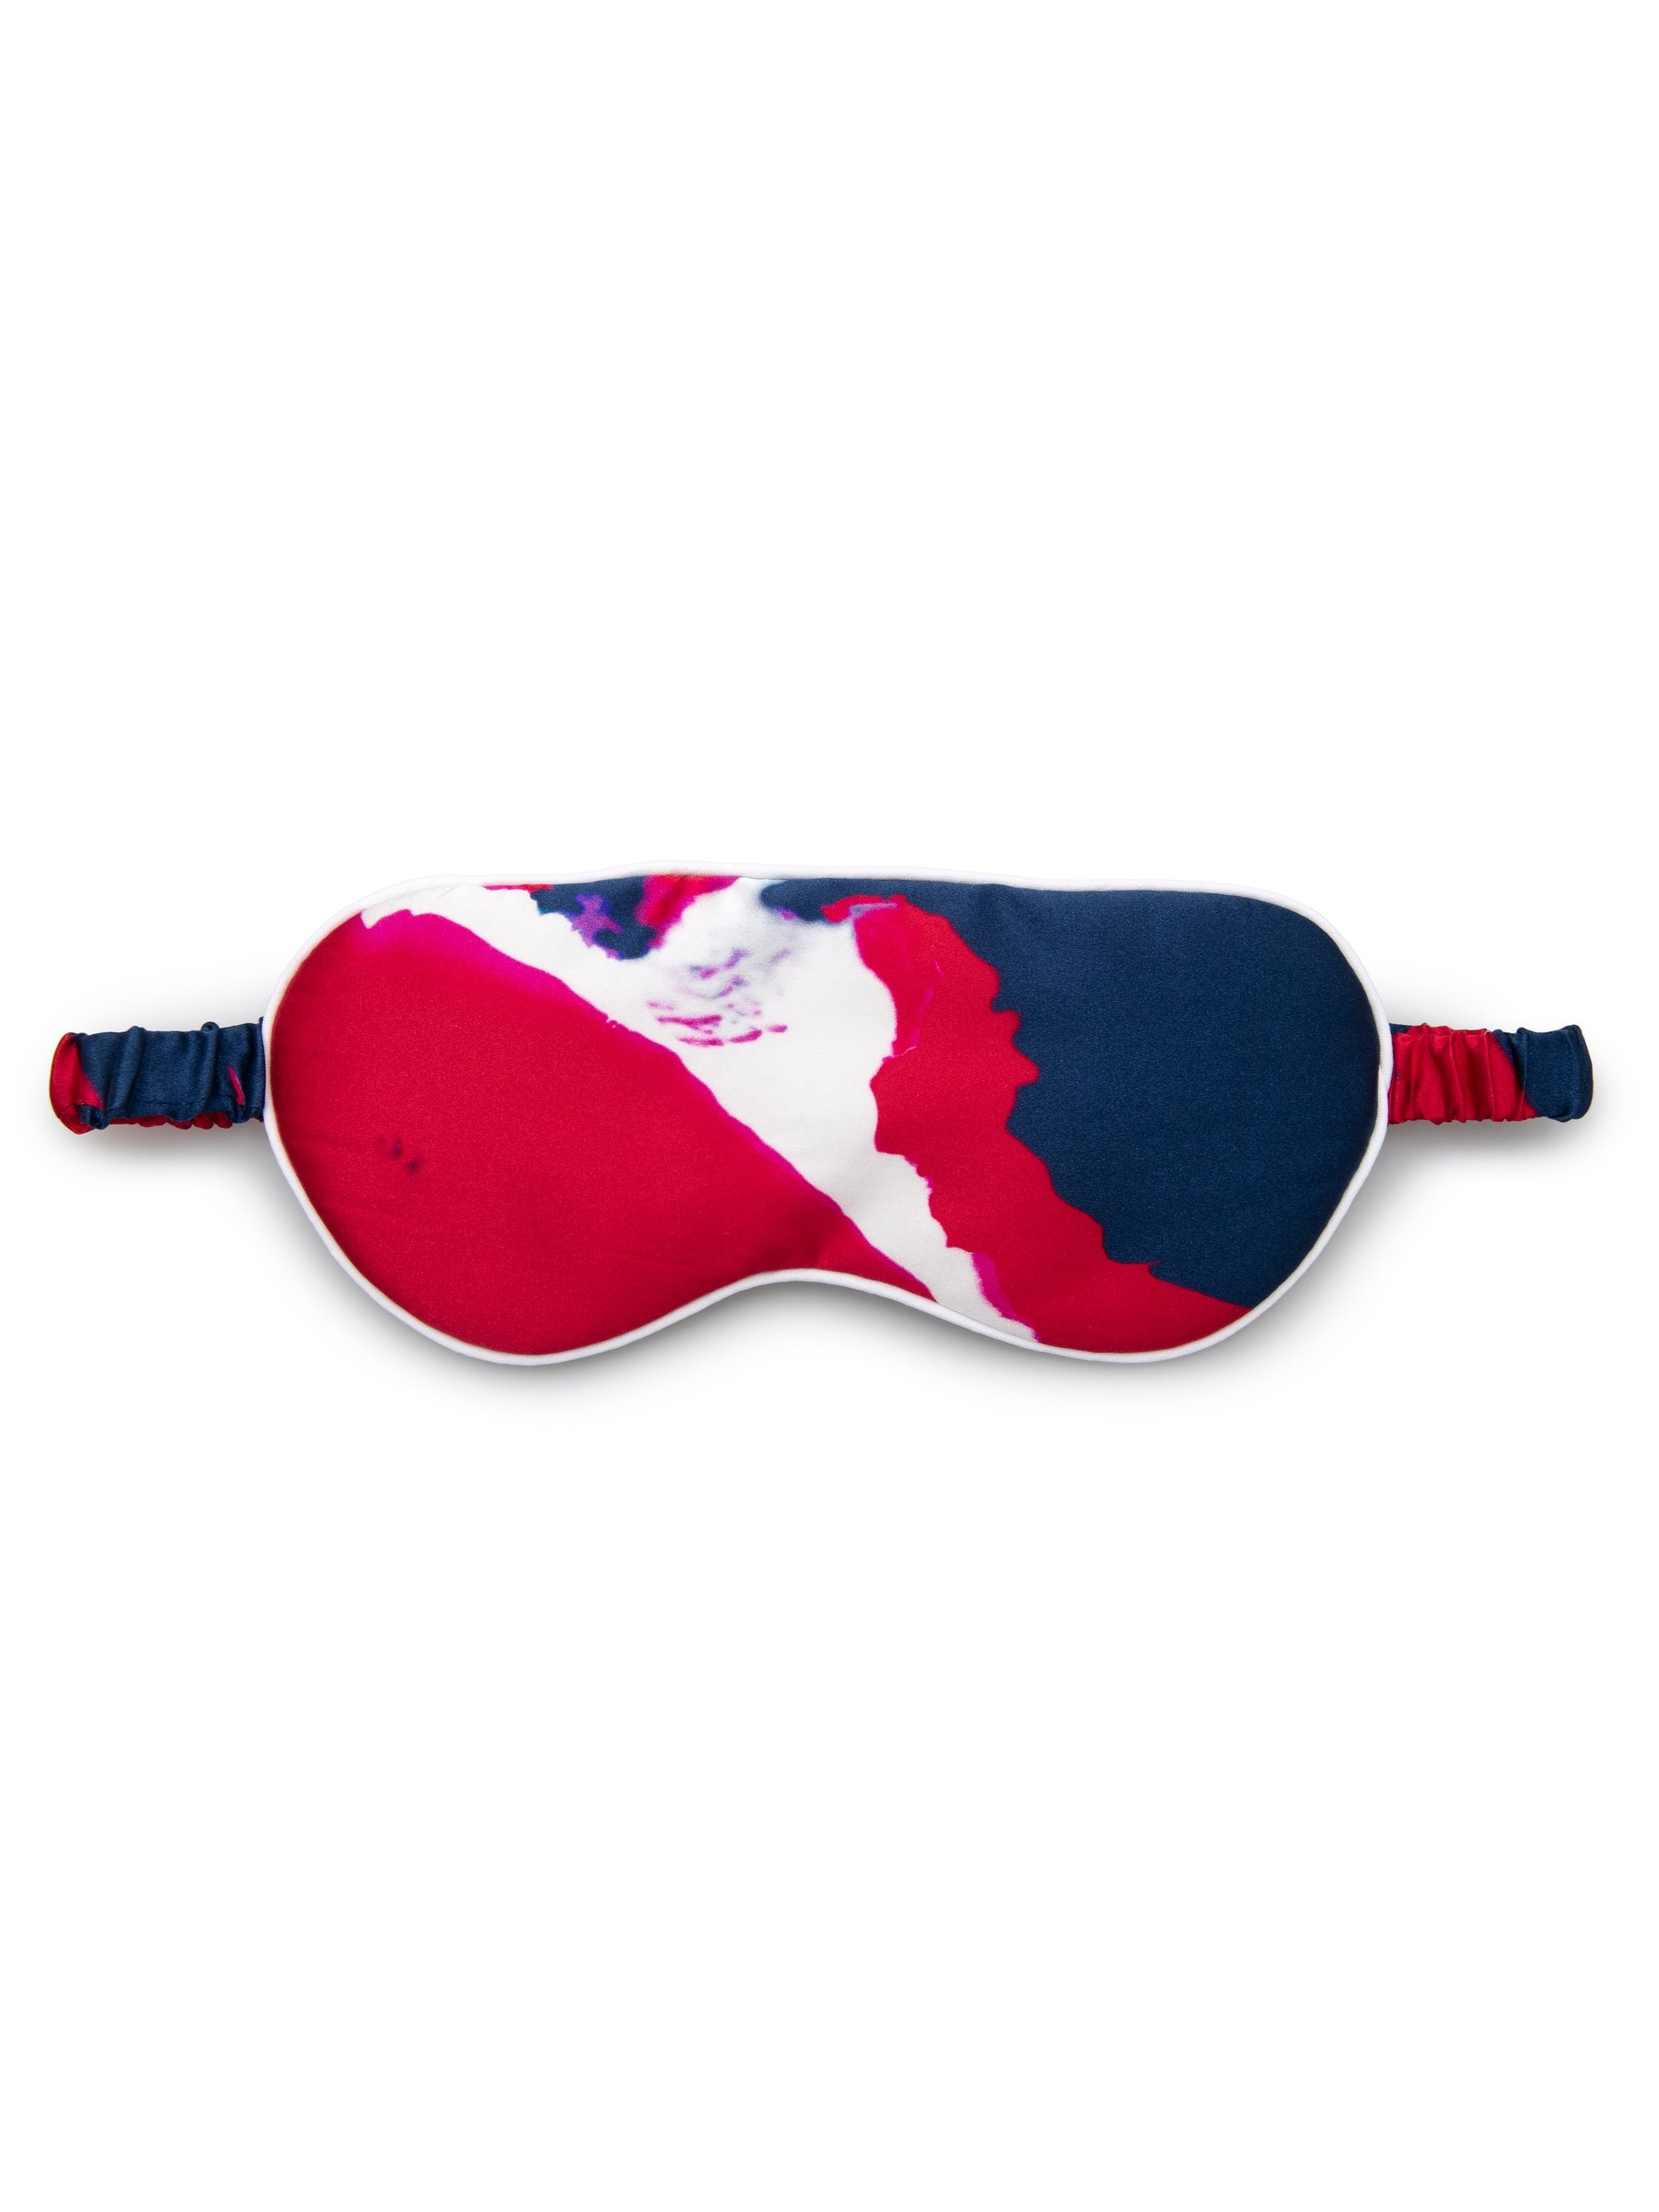 Reversible Eye Mask Brindisi 61 Pure Silk Satin Multi